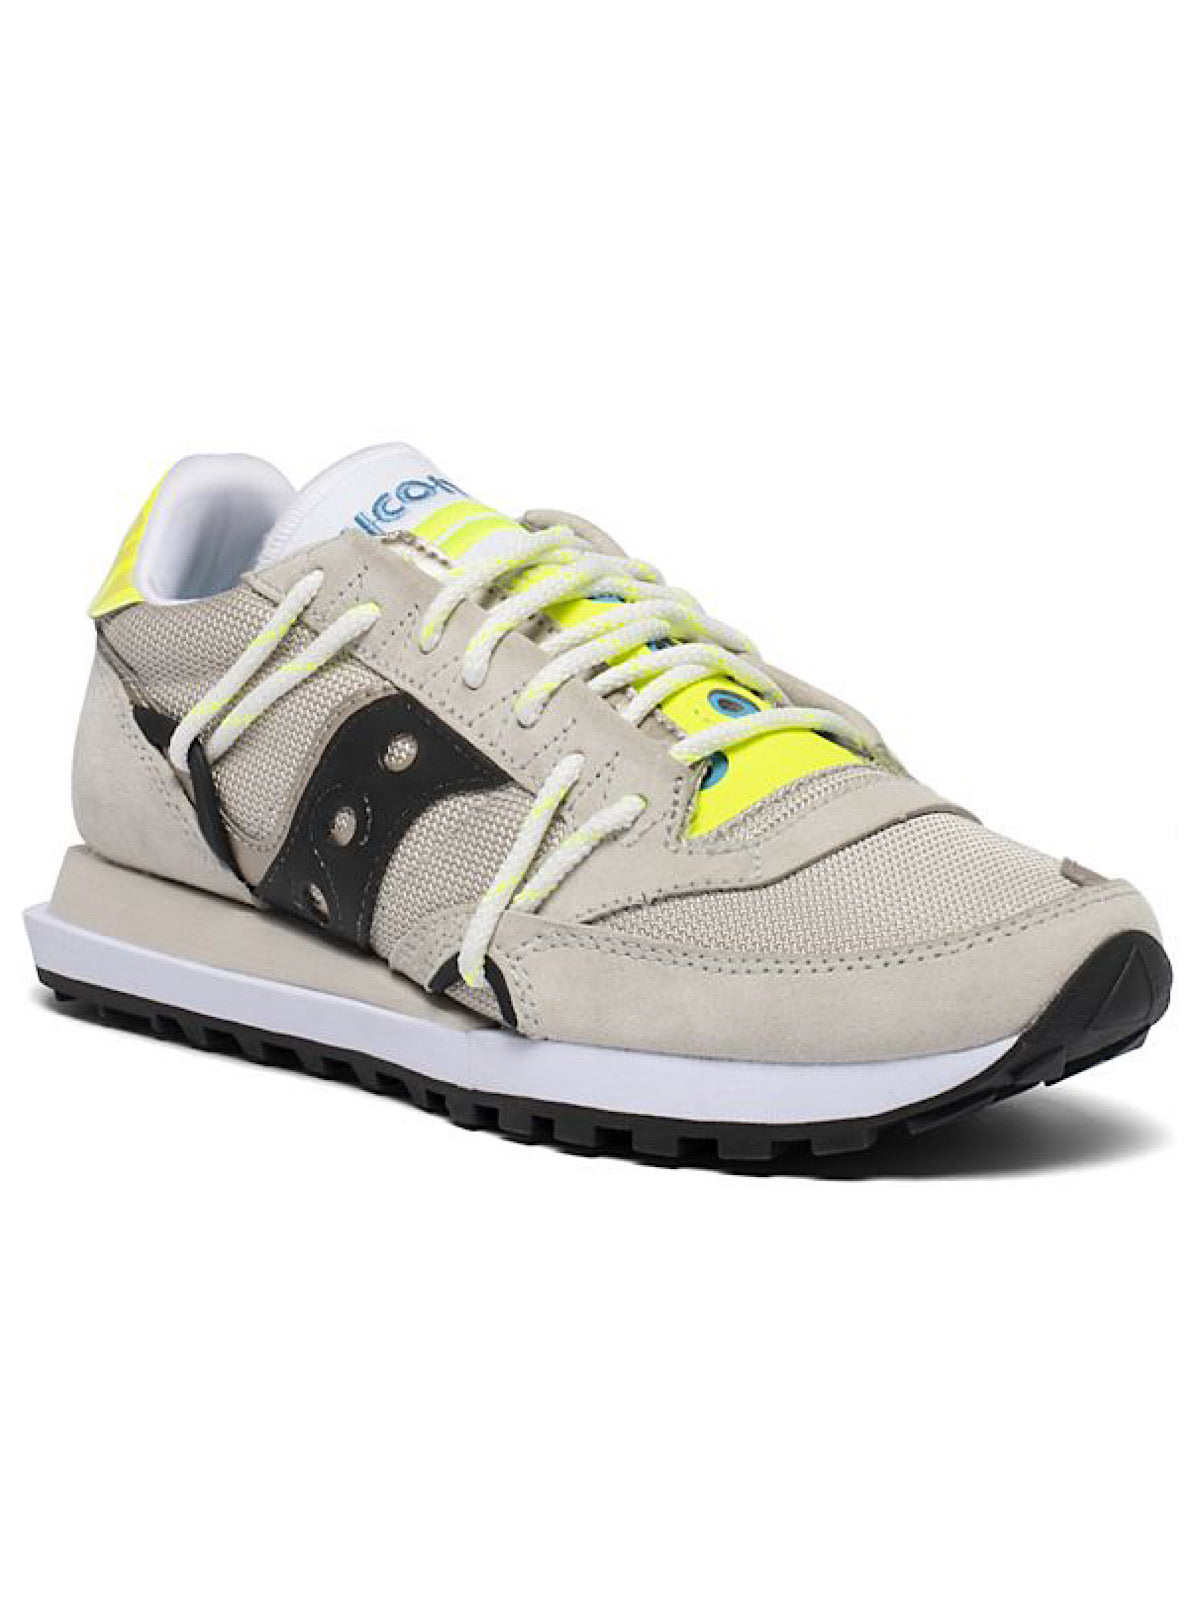 Saucony Shoes - Jazz Dst - Stone And Citron - S70528-7